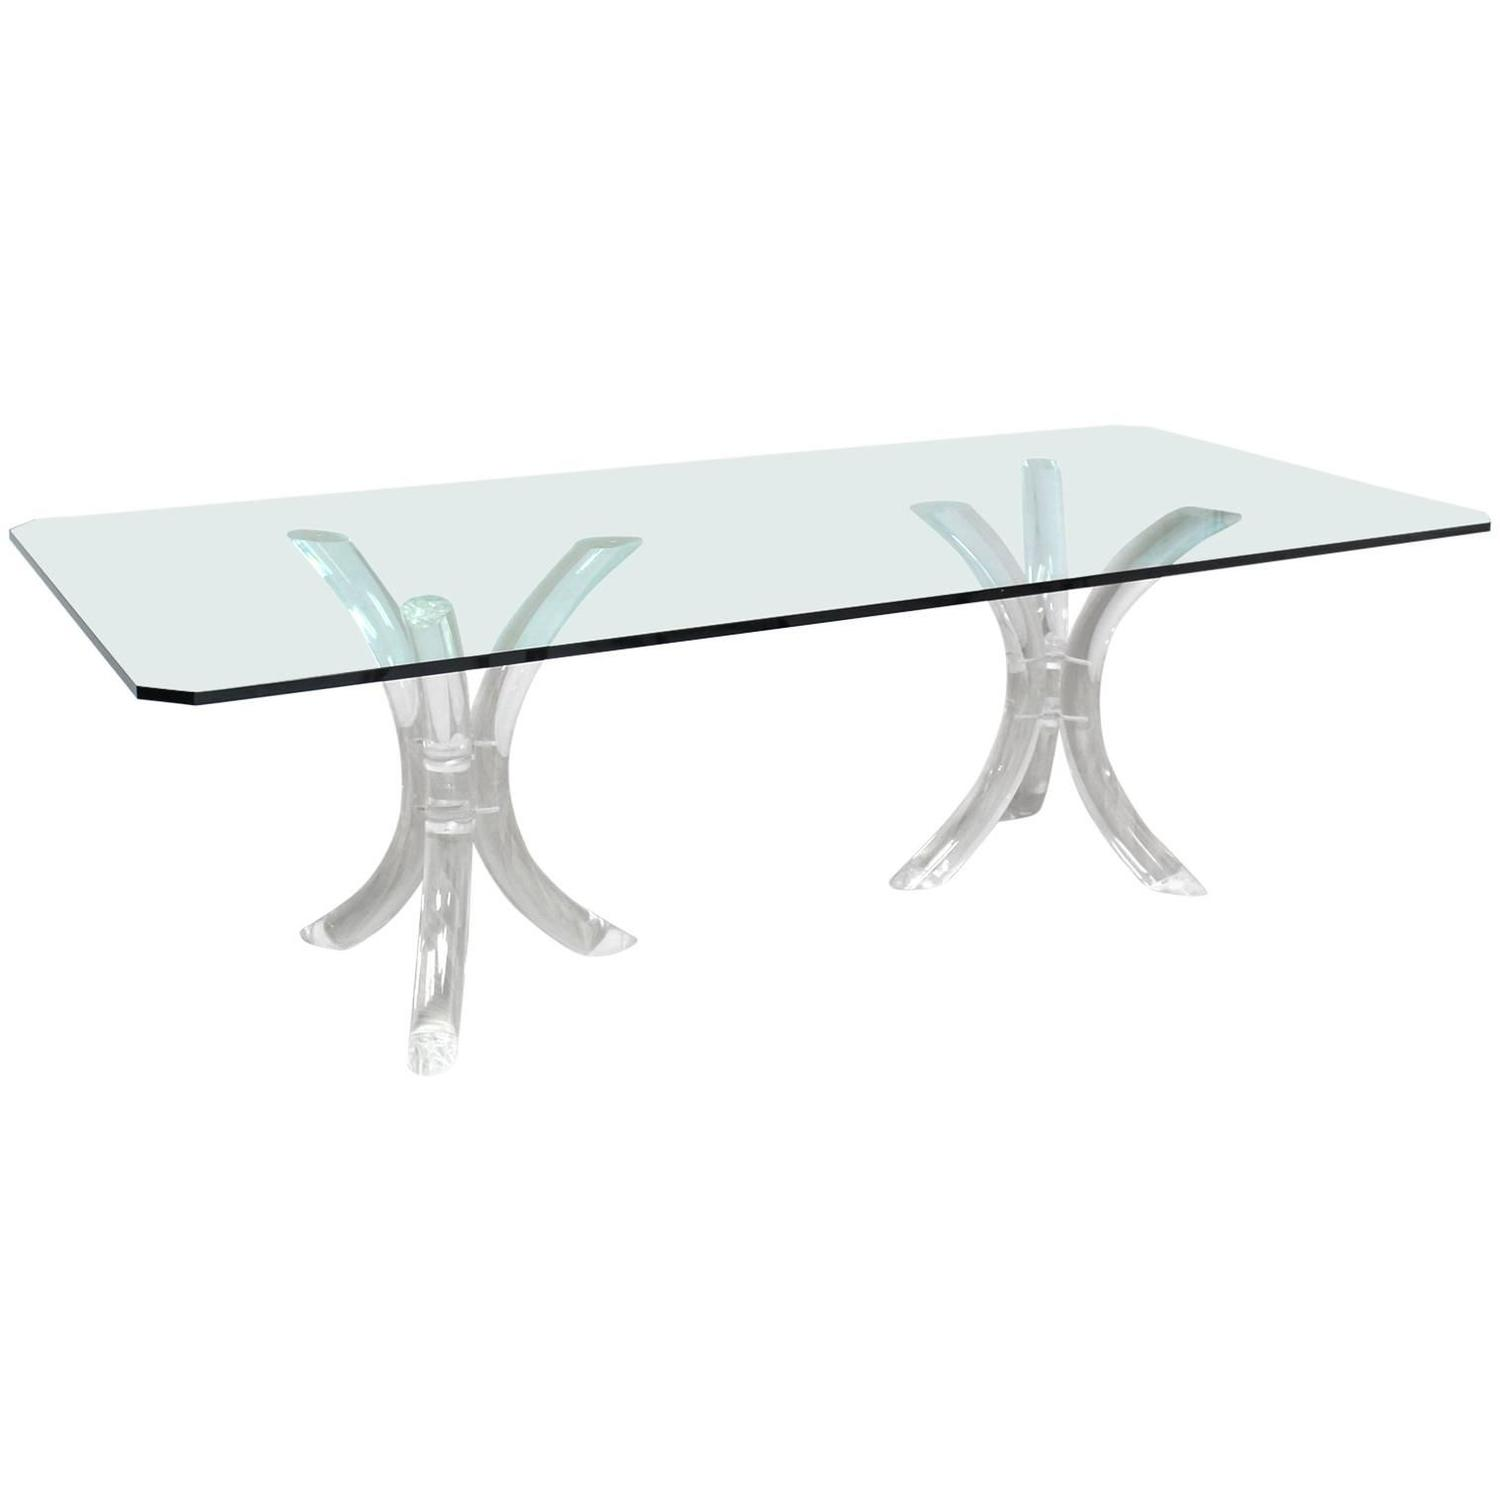 Large Glass Top Conference Table On Lucite Tusks Bases For Sale At 1stdibs